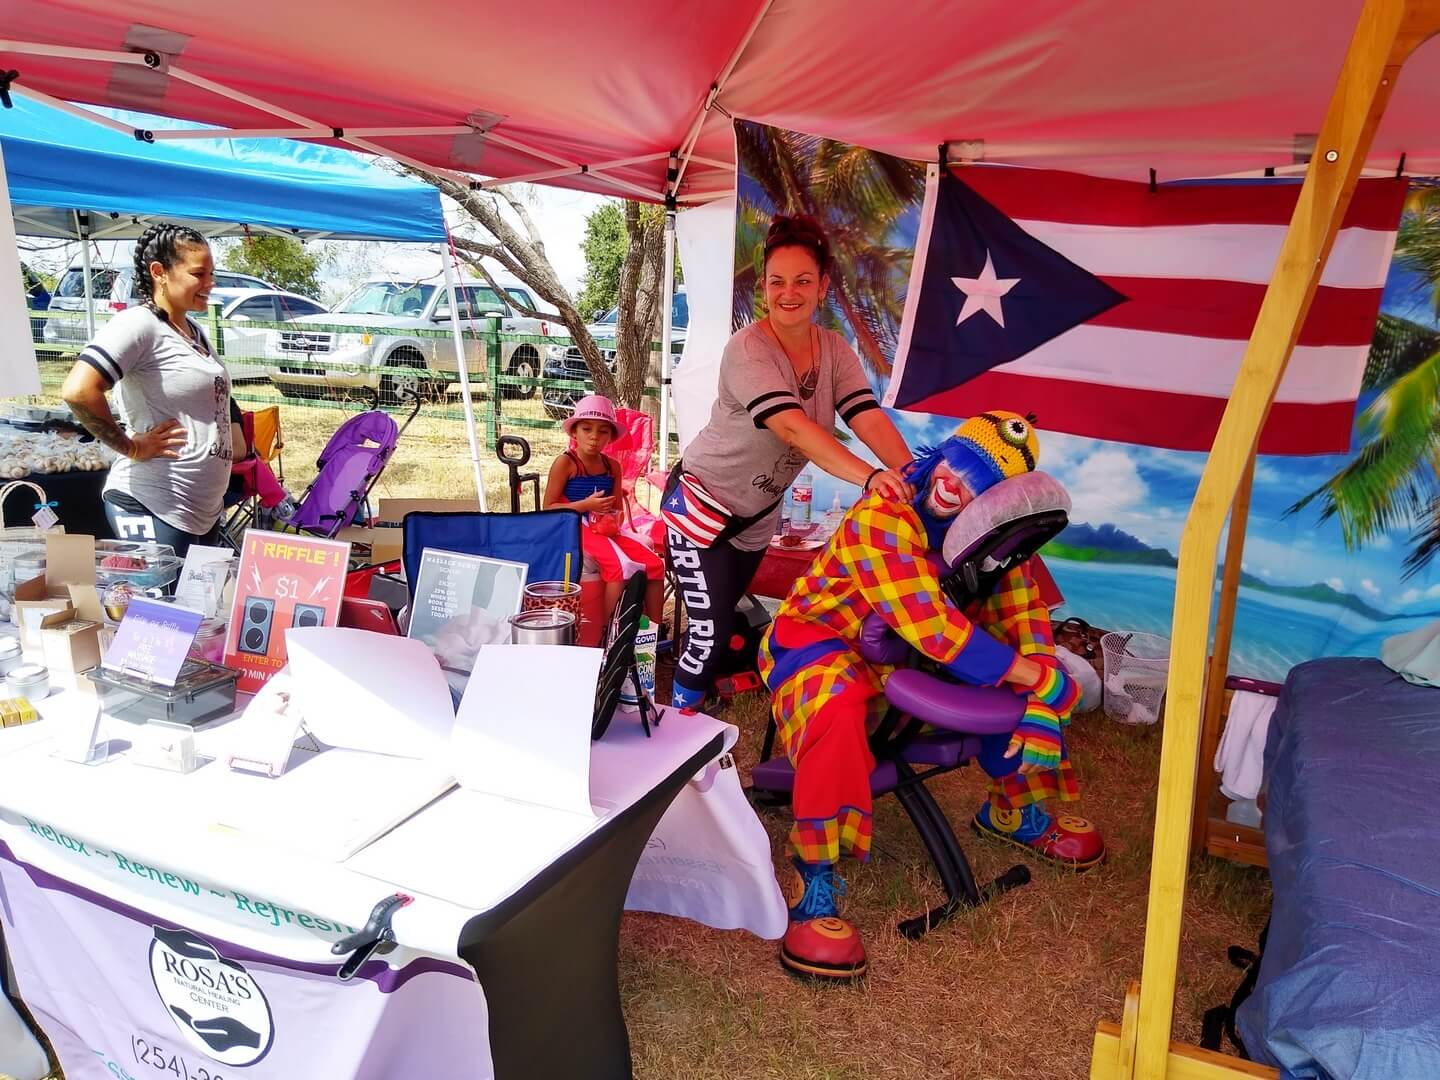 Rosa's Nature Healing Center Payaso Pikorete 2do Festival Borinquen Killeen TX